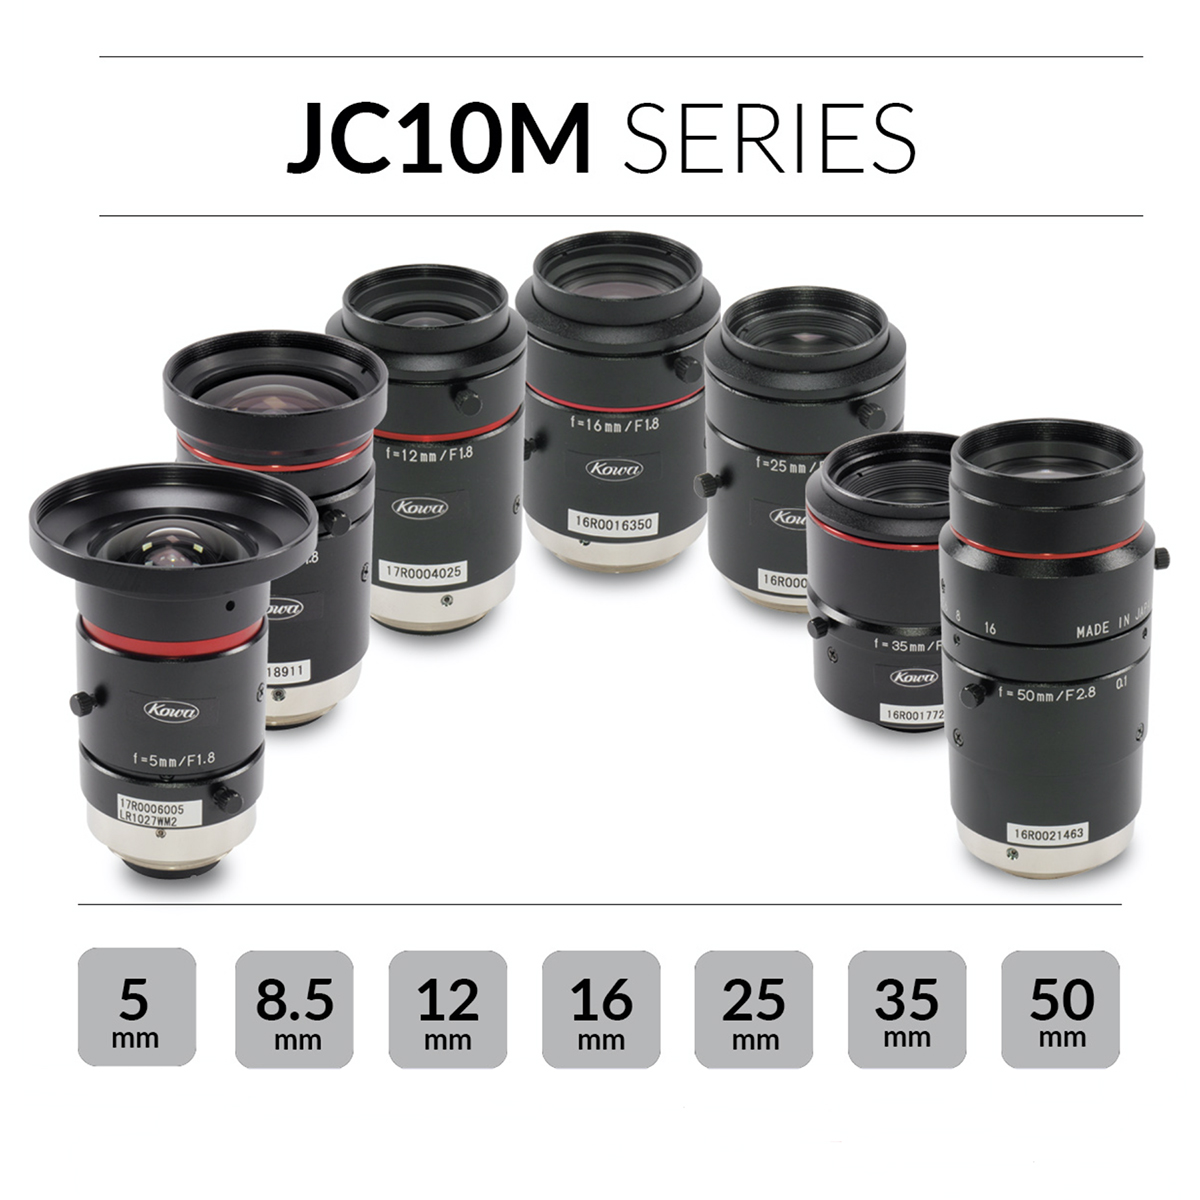 Kowa JC10M series lenses